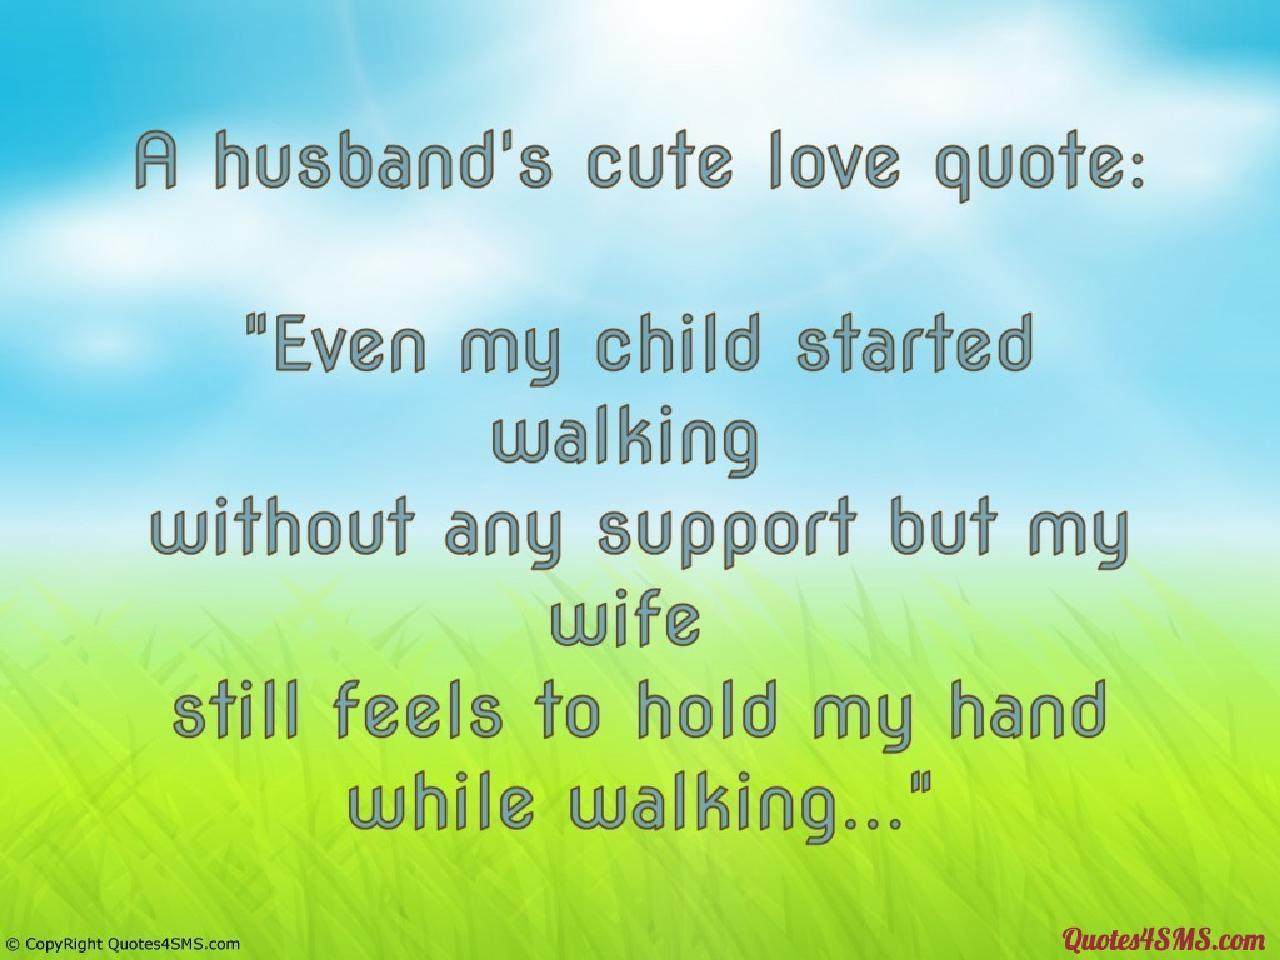 Wallpaper Of Love For Husband : I Love My Husband Wallpapers - Wallpaper cave